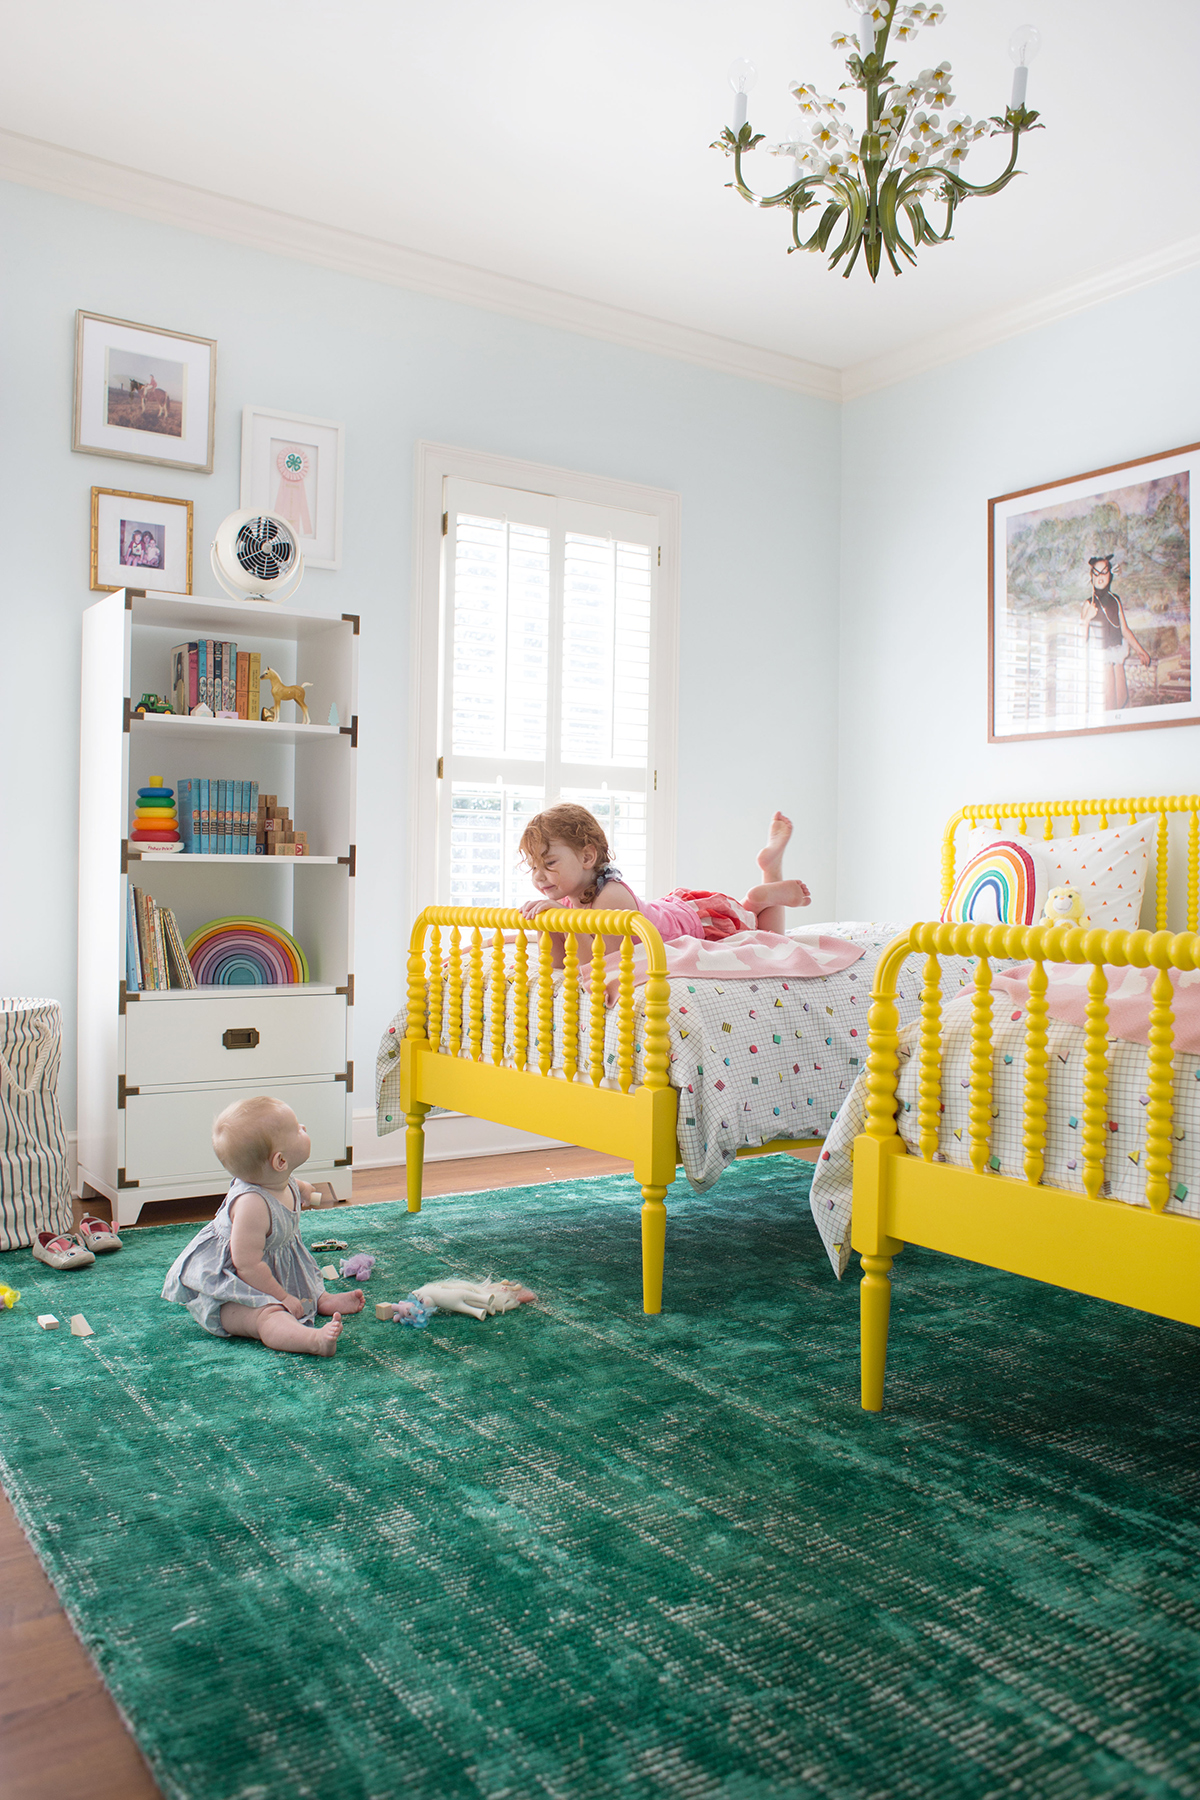 Amelia S Room Toddler Bedroom: Neutral Shared Bedroom Inspiration